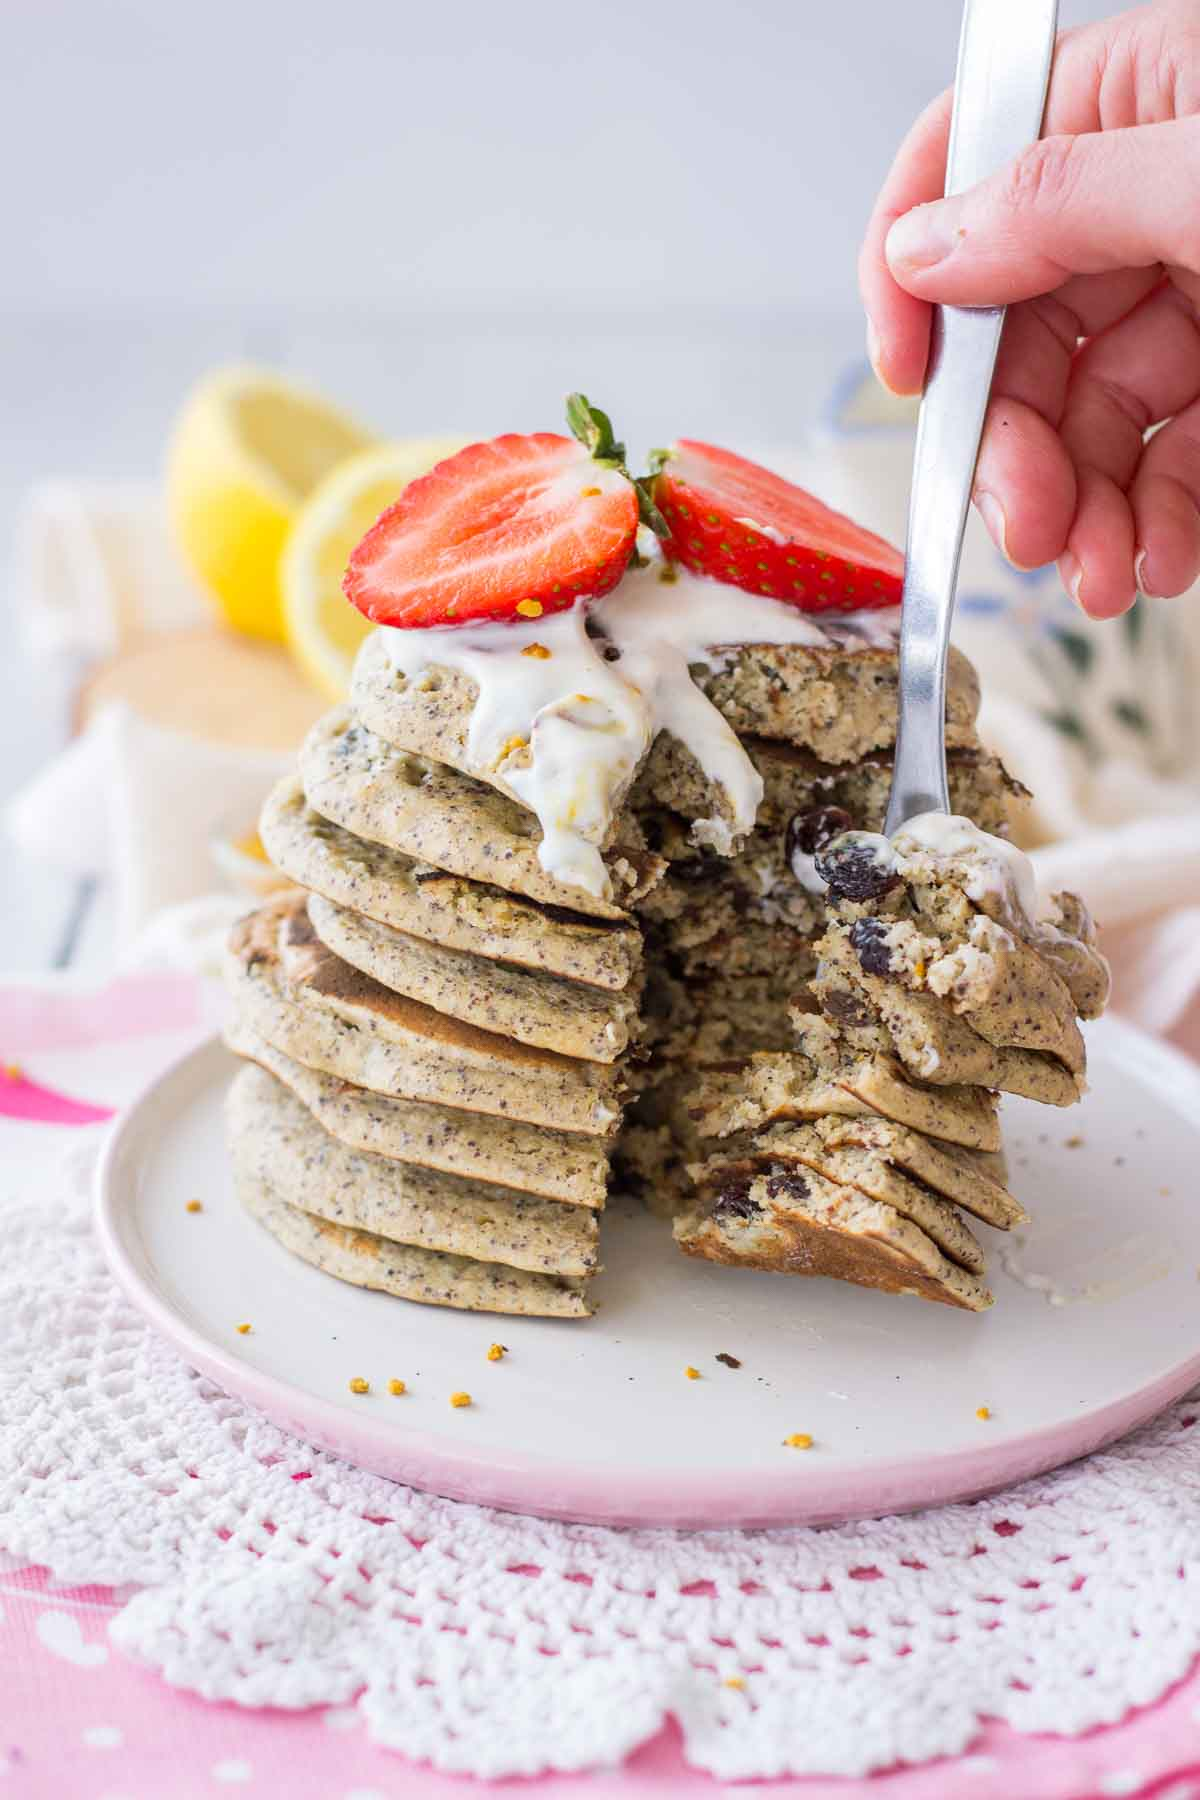 Lemon pancakes made with oats and poppy seeds served on a plate with fresh strawberries.